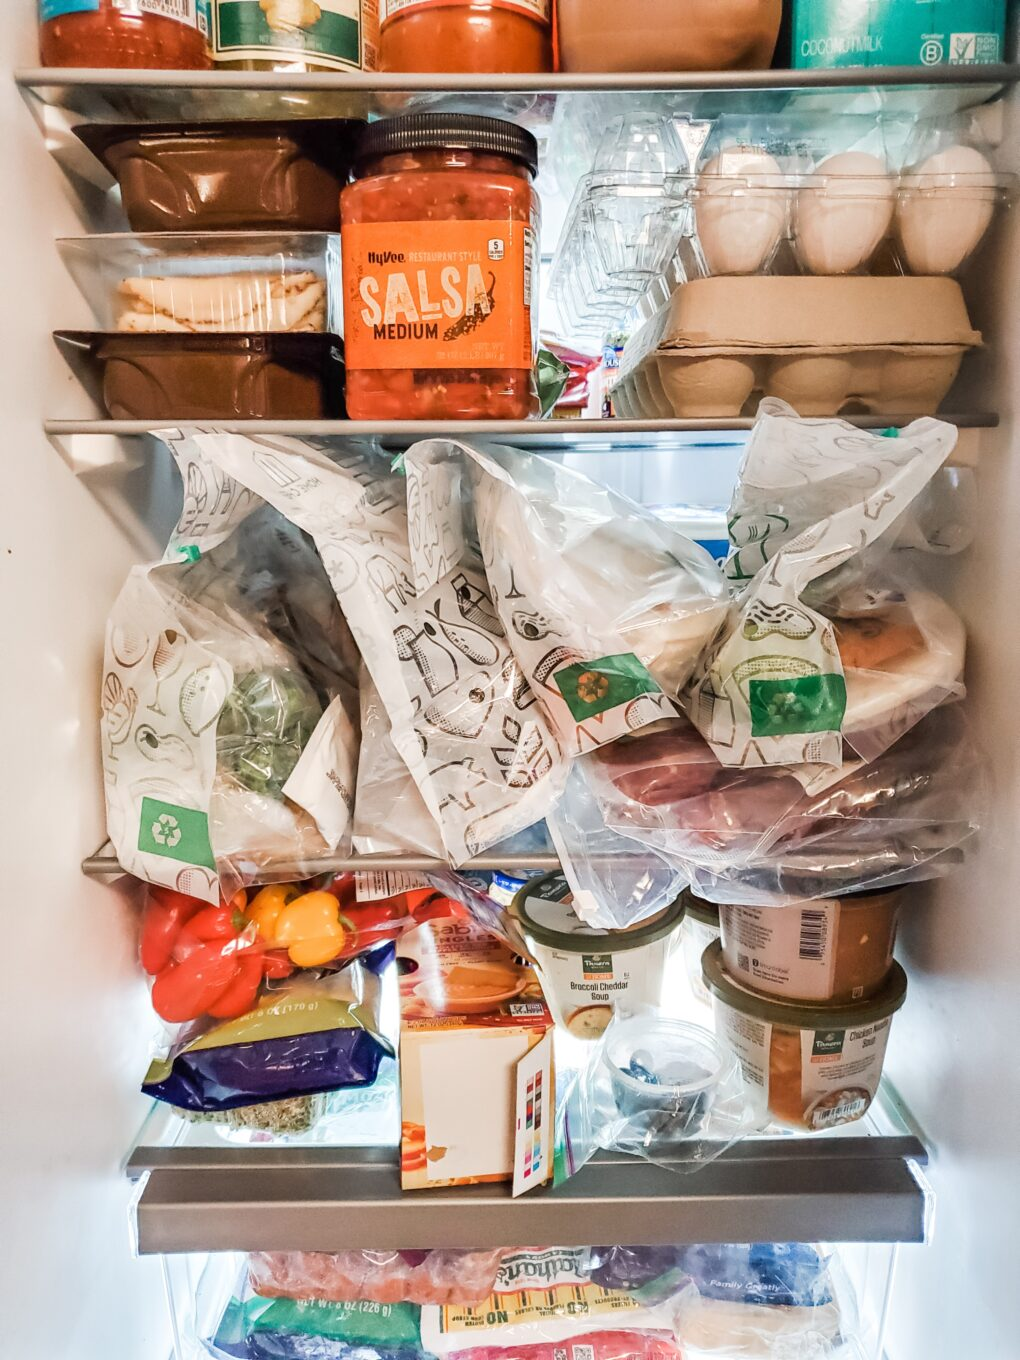 My refrigerator with Home Chef meal kits on the shelf